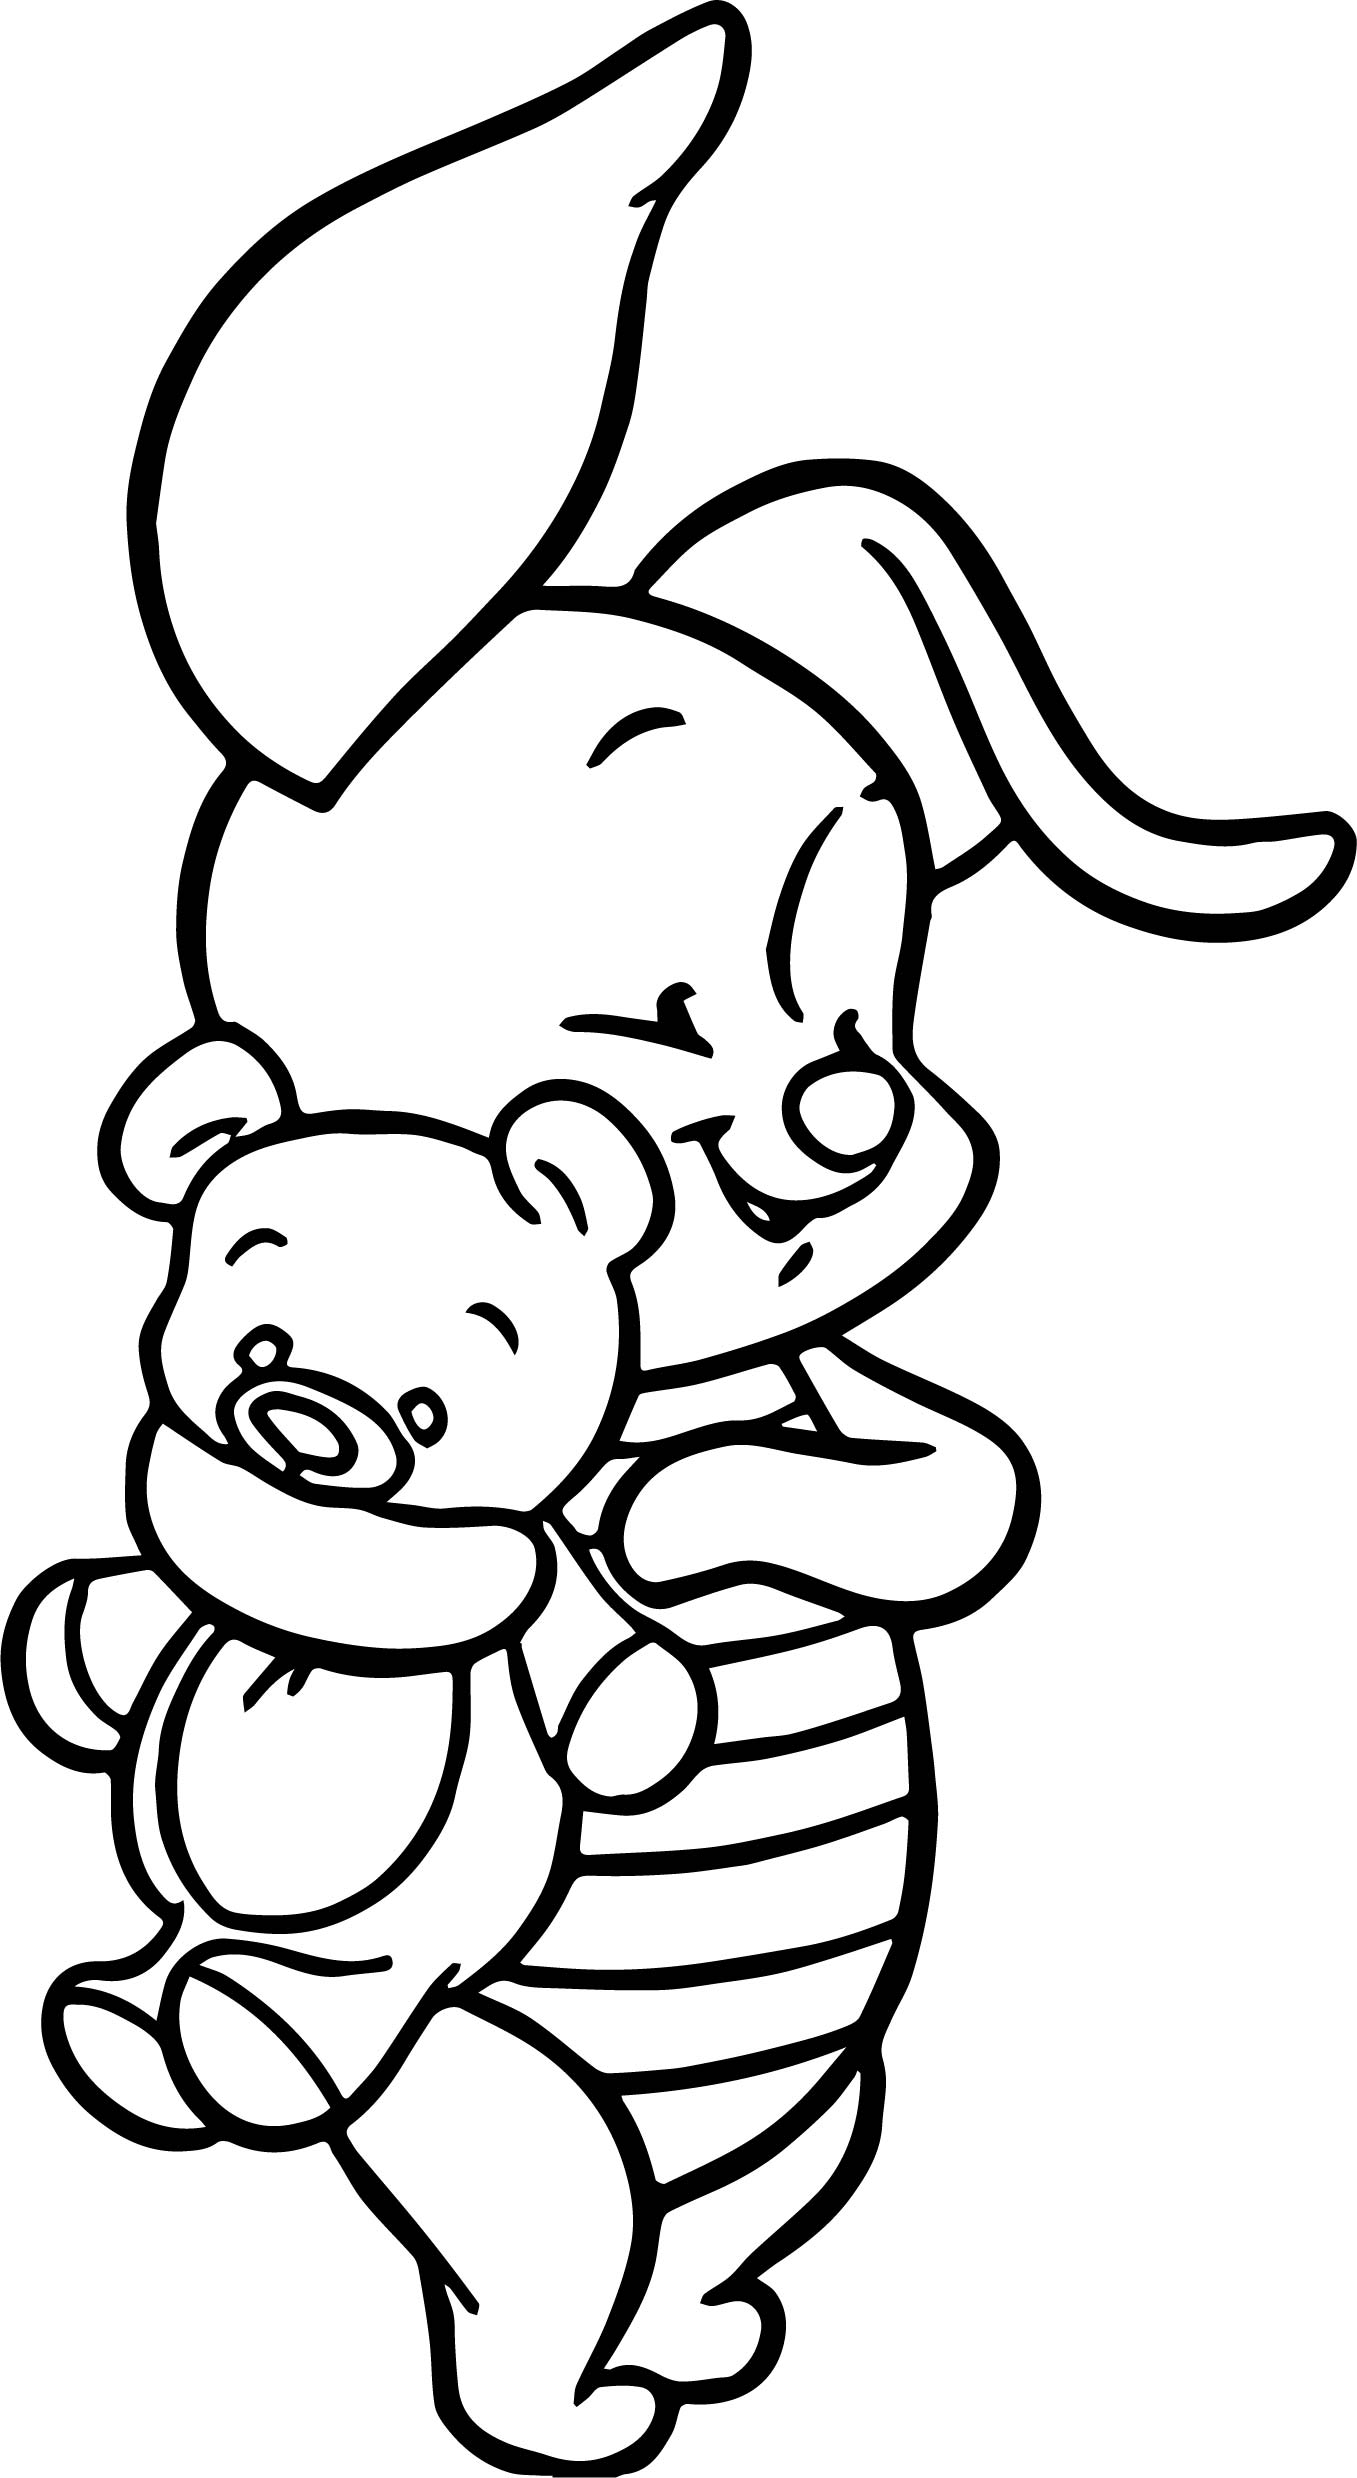 printable winnie the pooh coloring pages get this free printable winnie the pooh coloring pages 59067 printable pooh winnie coloring the pages